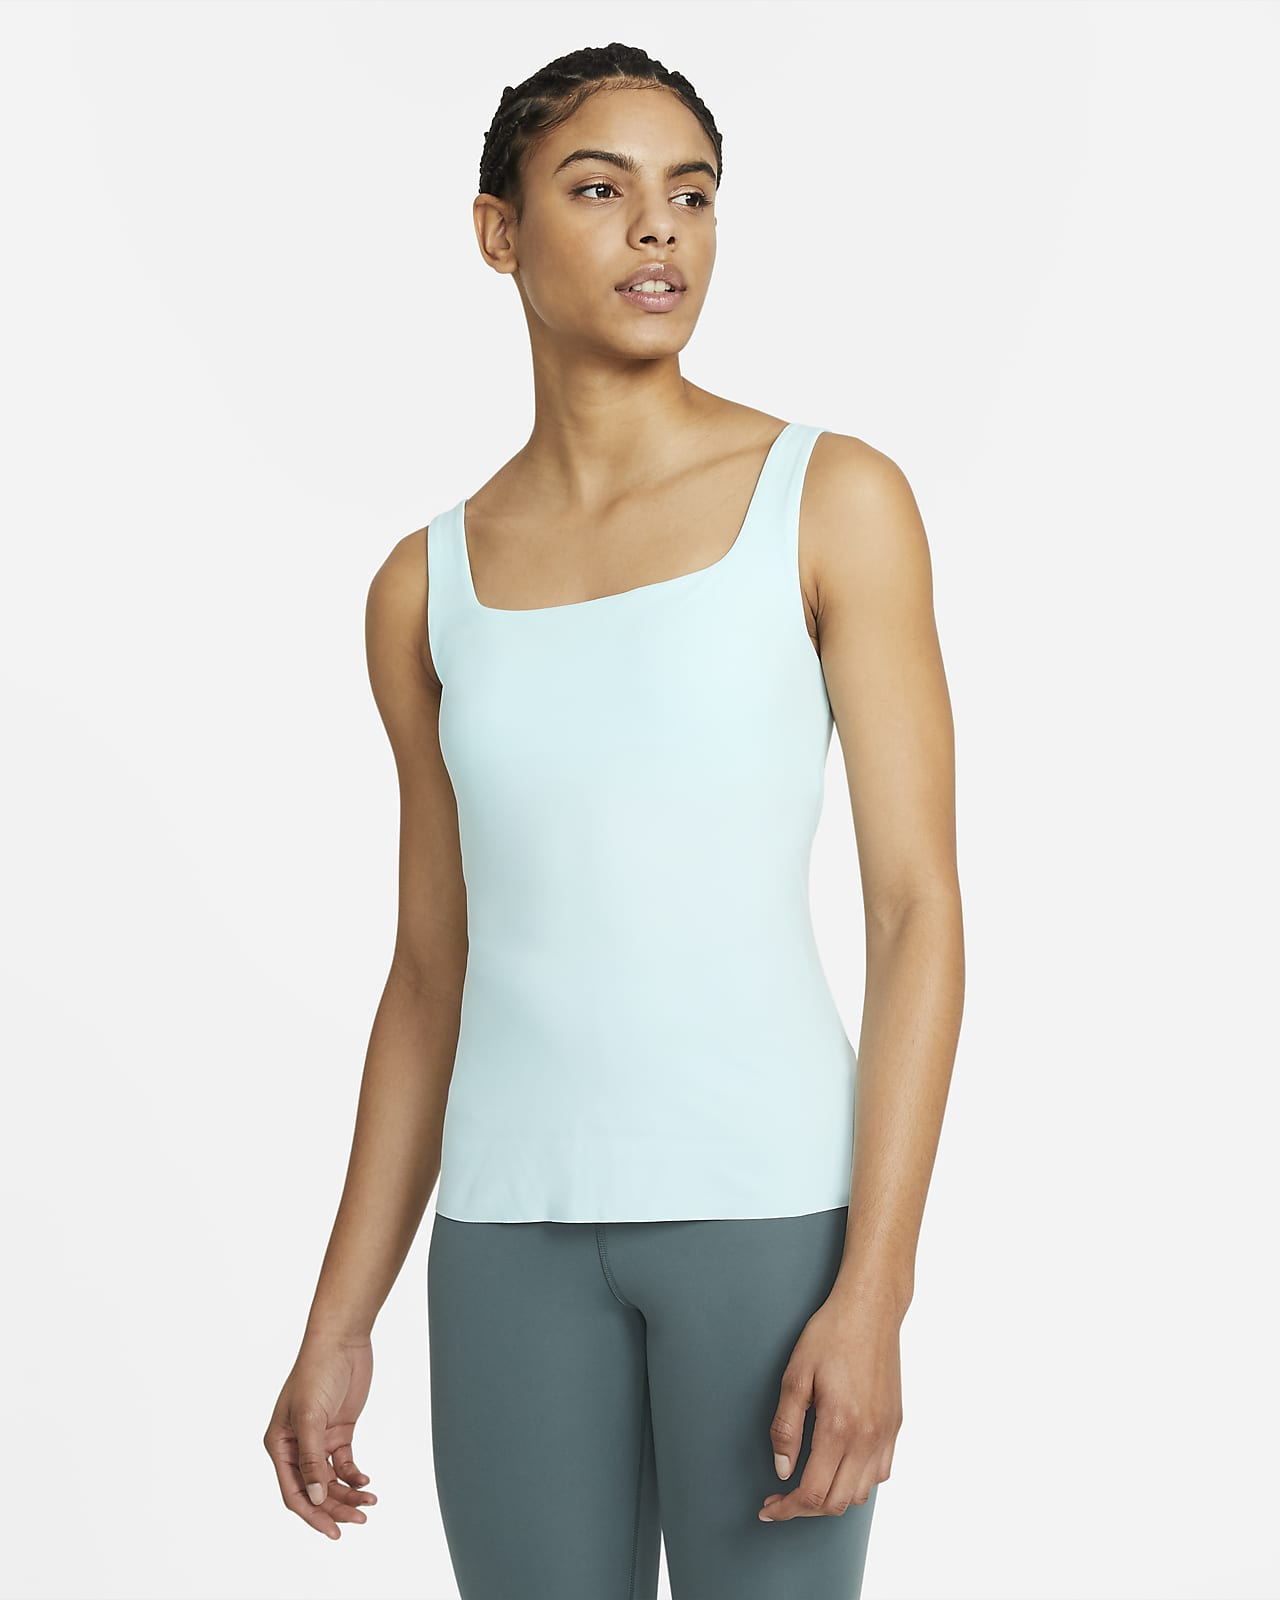 Nike Yoga Luxe Women's Shelf-Bra Tank